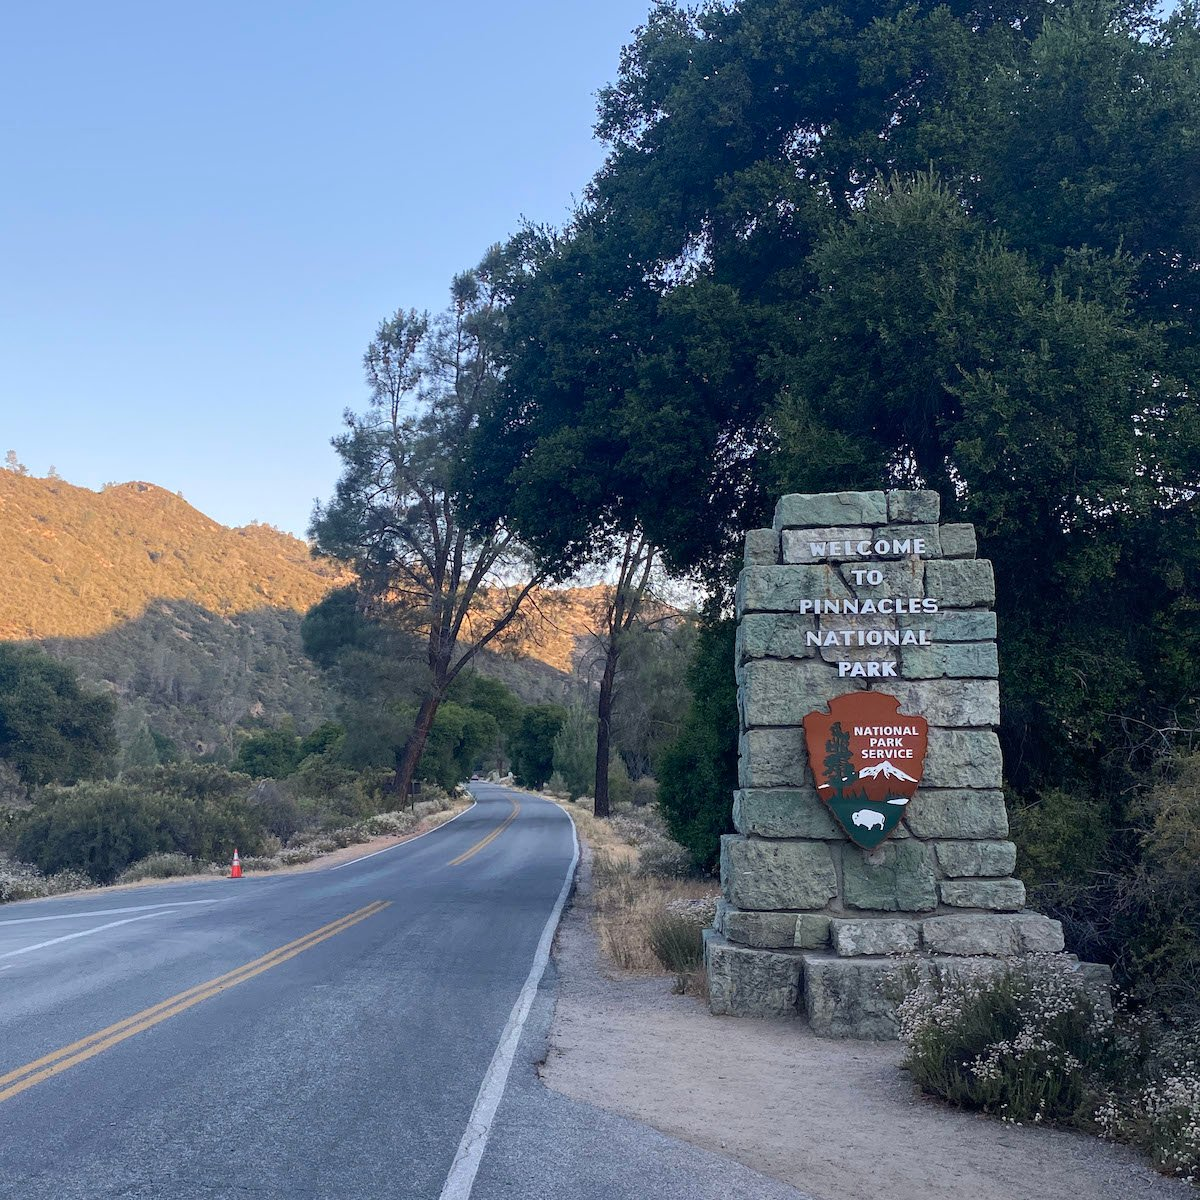 One of the entrance signs in Pinnacles National Park